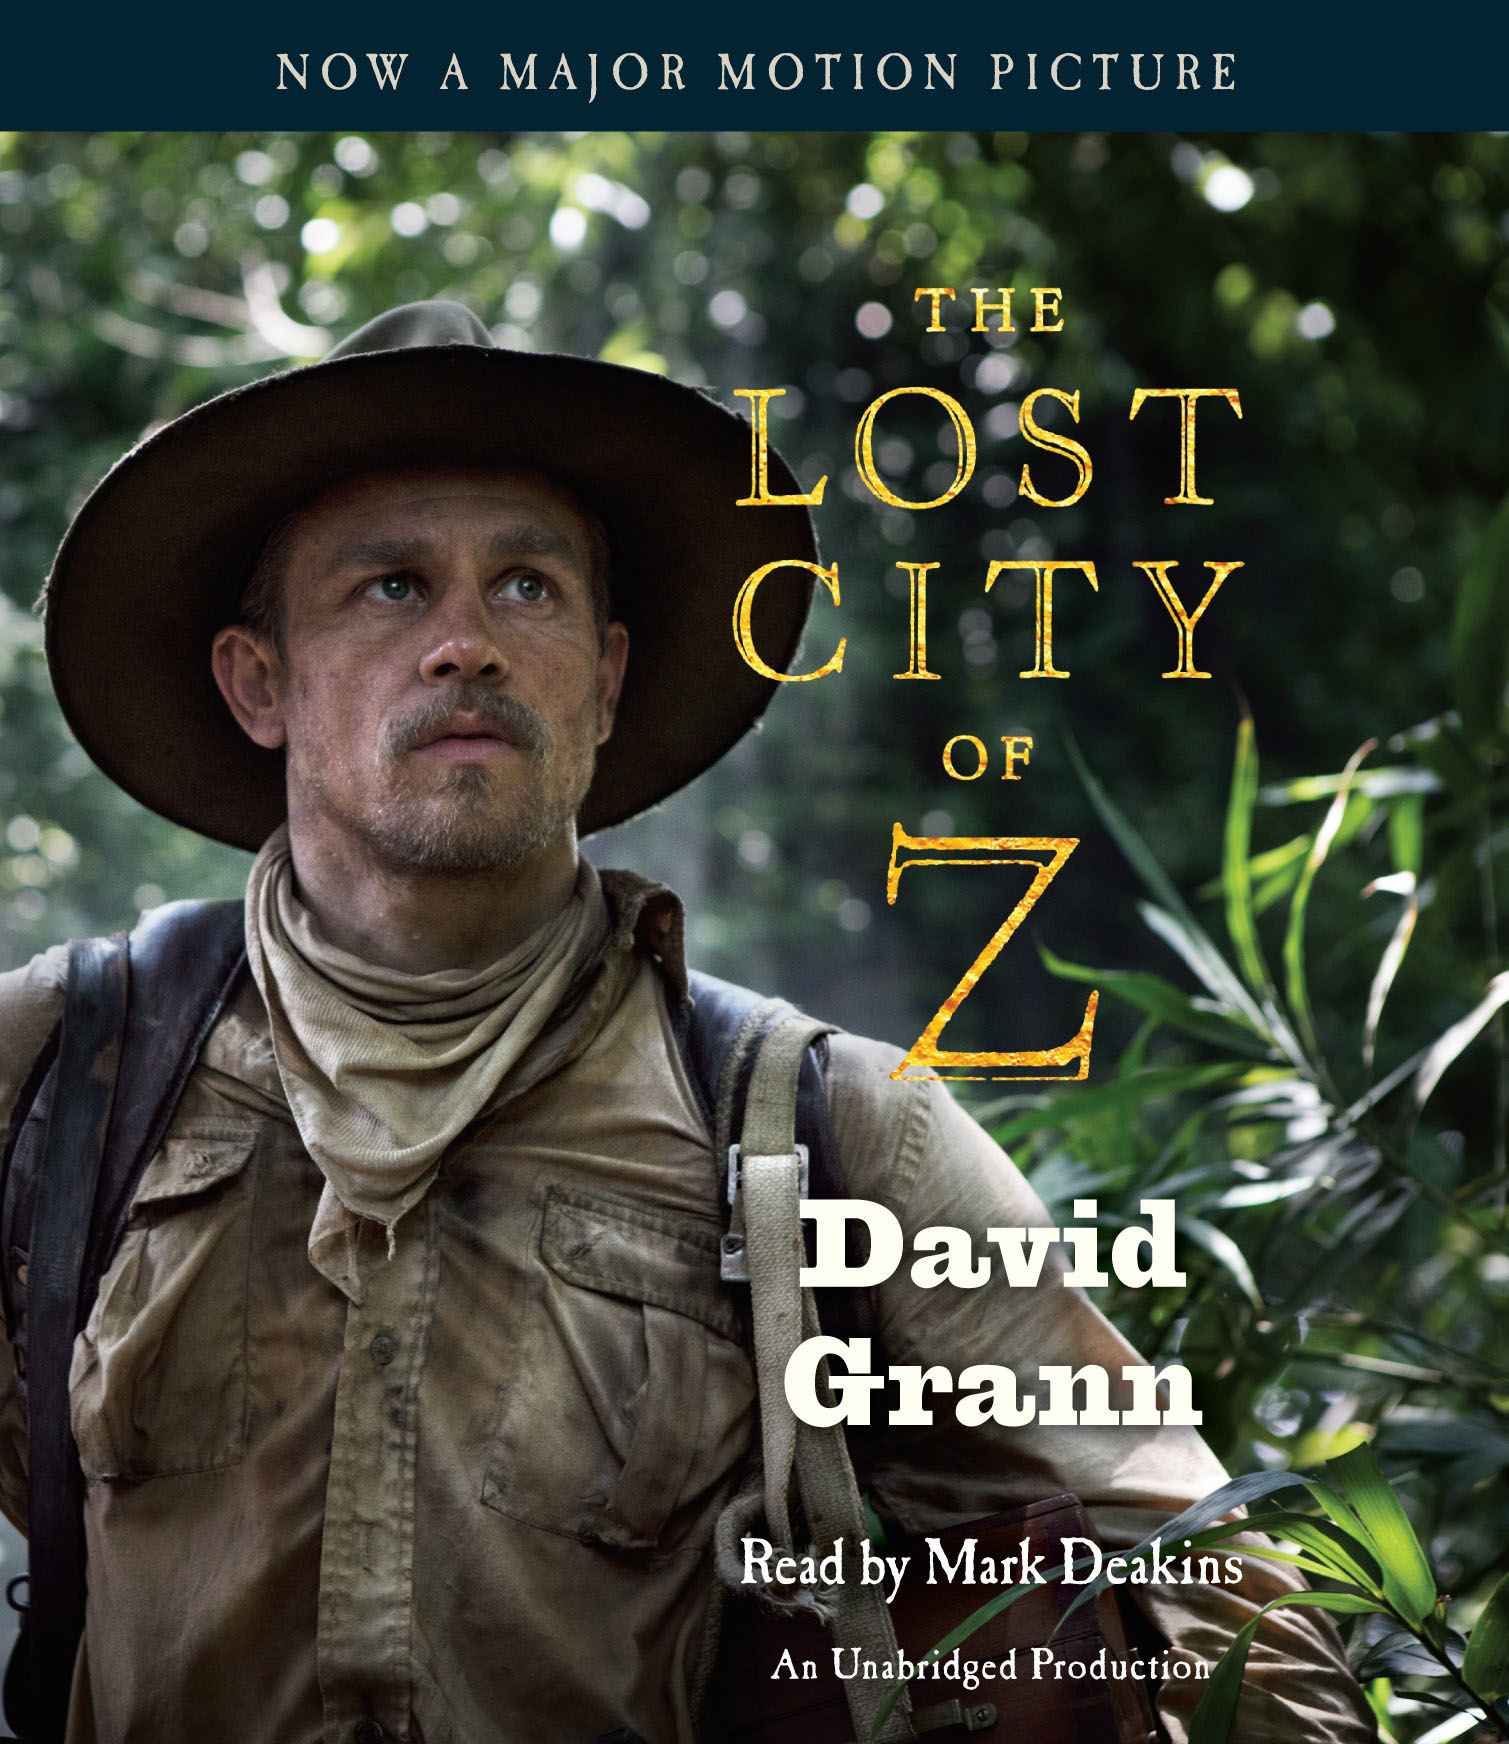 The Lost City of Z (Movie Tie-In) lost in translation